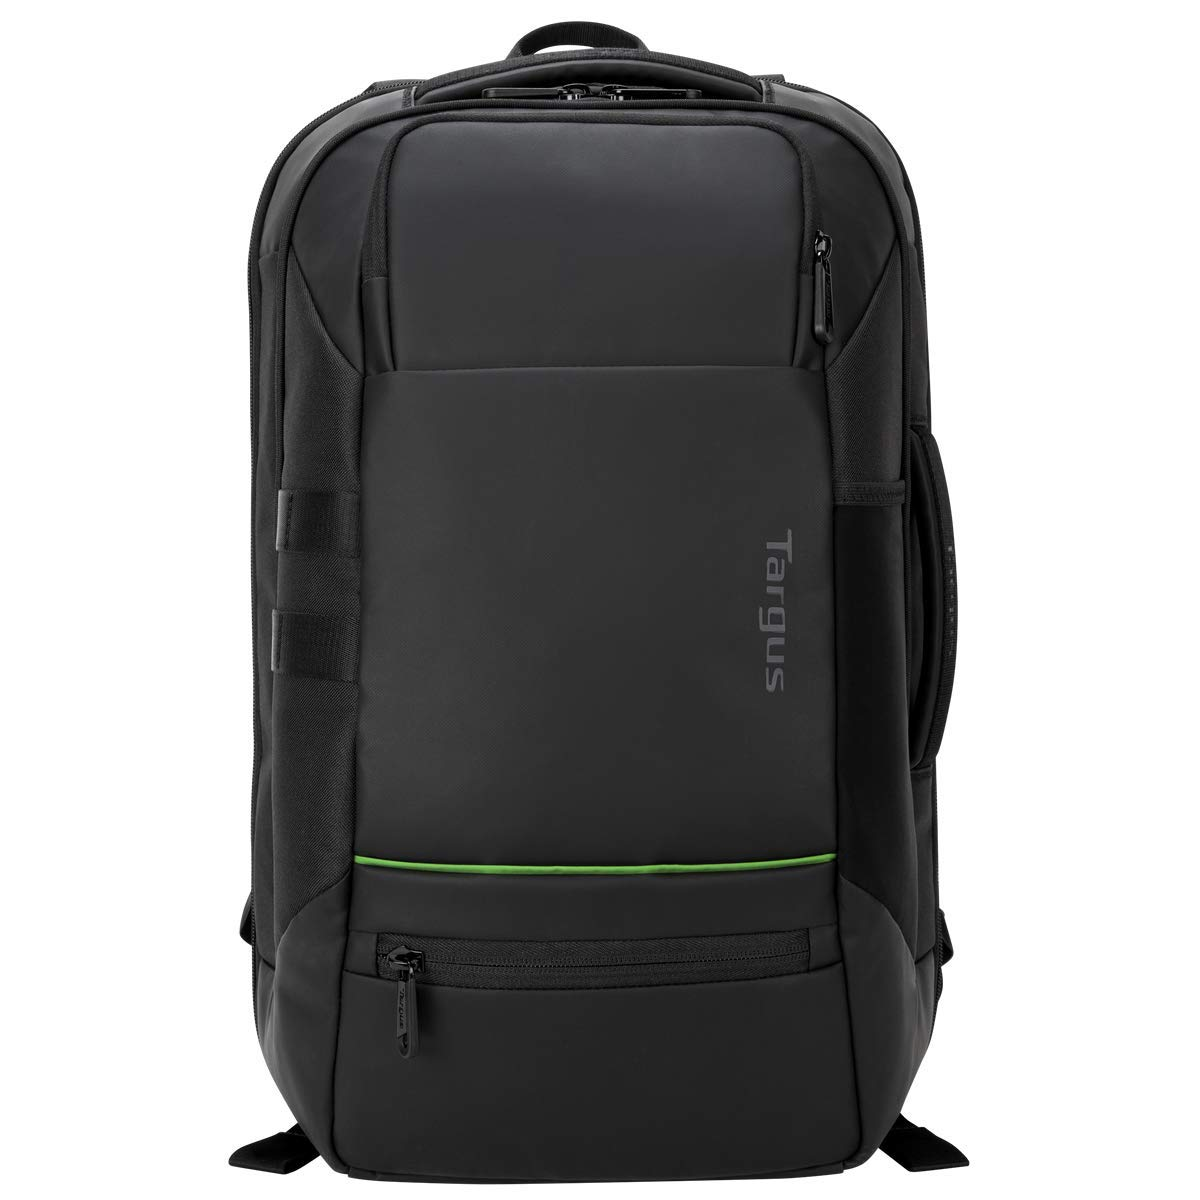 Targus Balance EcoSmart Travel and Checkpoint-Friendly Laptop Backpack with Protective Sleeve for 15.6-Inch Laptop and Felted Phone Pocket, Black TSB921US